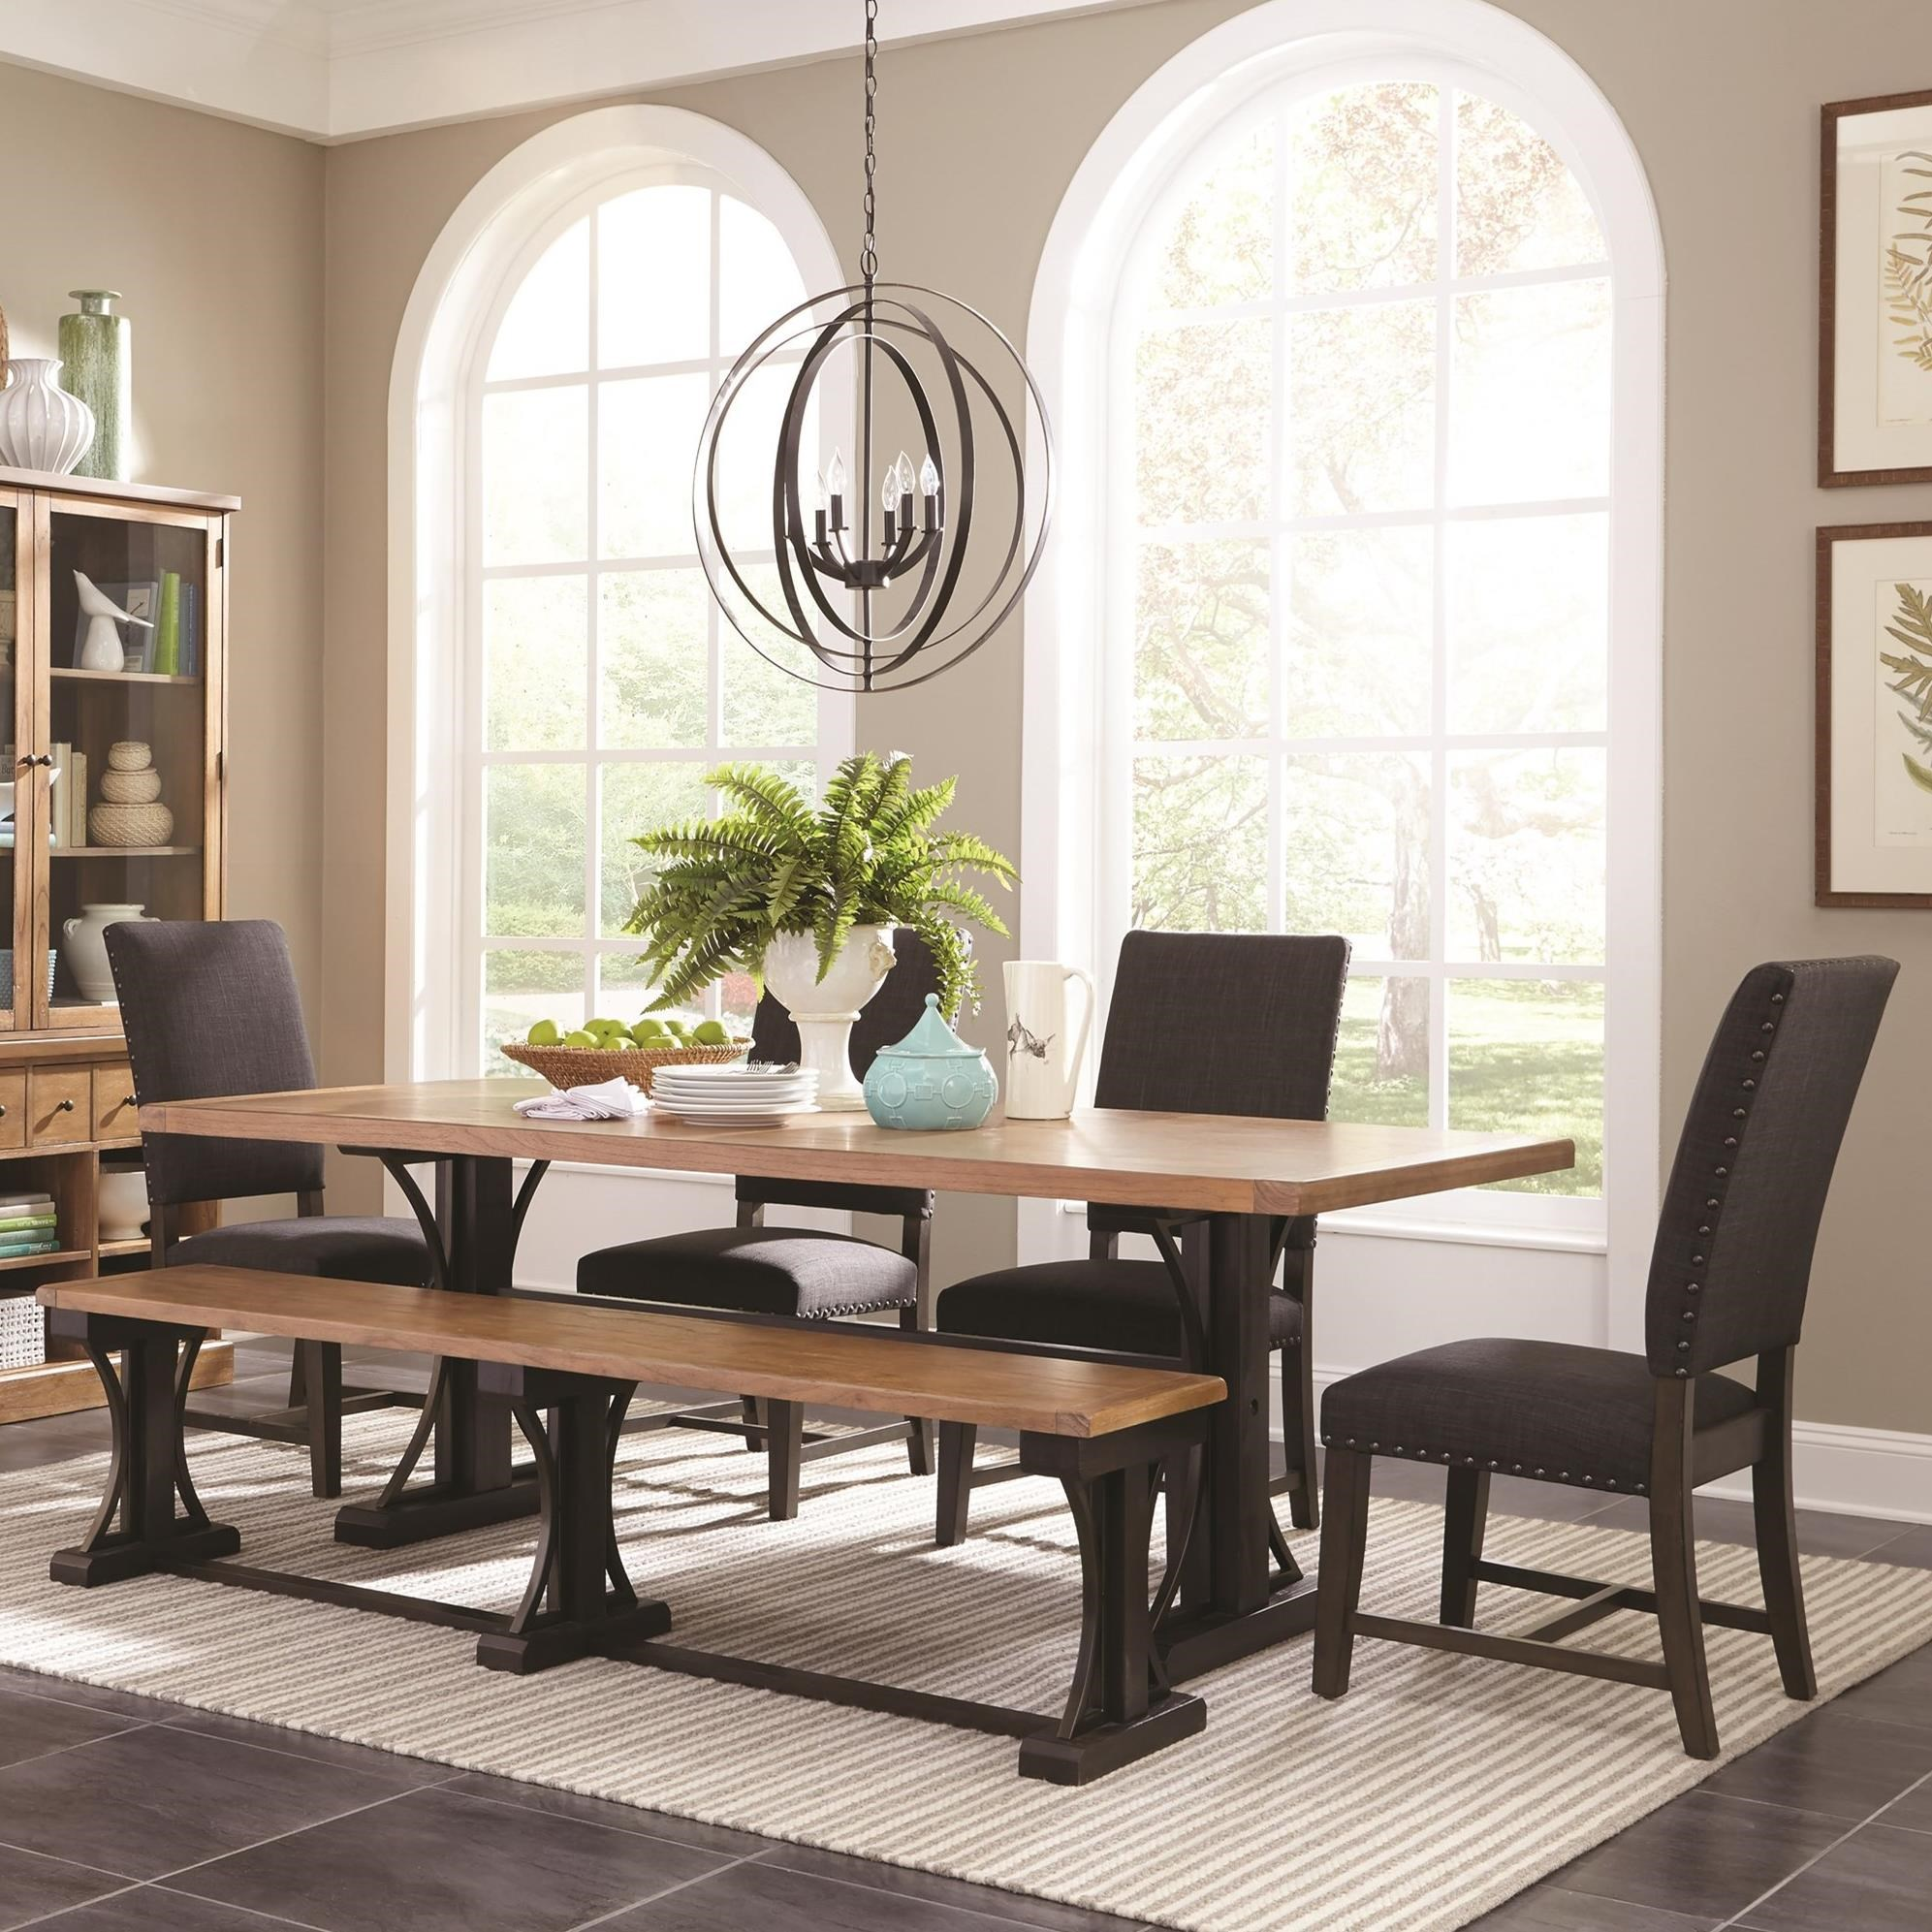 Scott Living Bi Farmhouse Table Set With Parson Chairs And A Bench